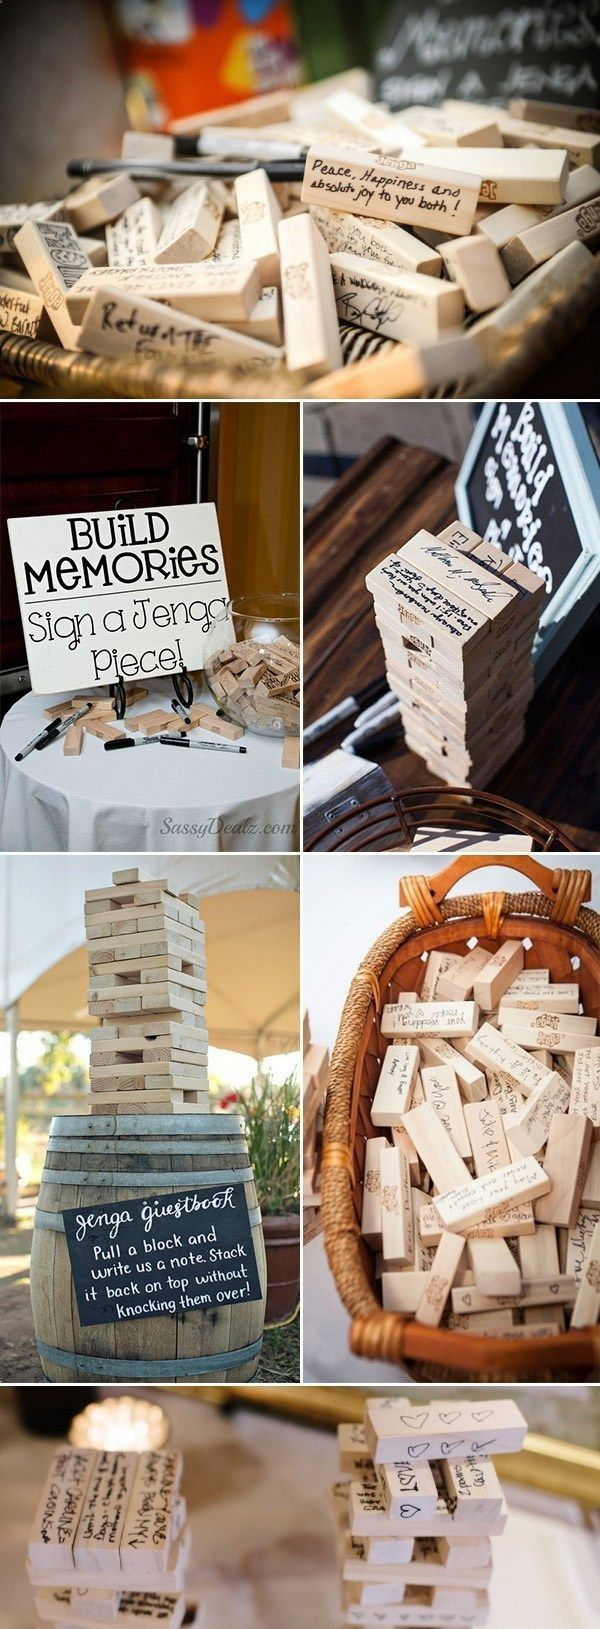 44 Unique Wedding Guestbook That You Can Make - #guestbook #Unique #Wedding #weddingfall